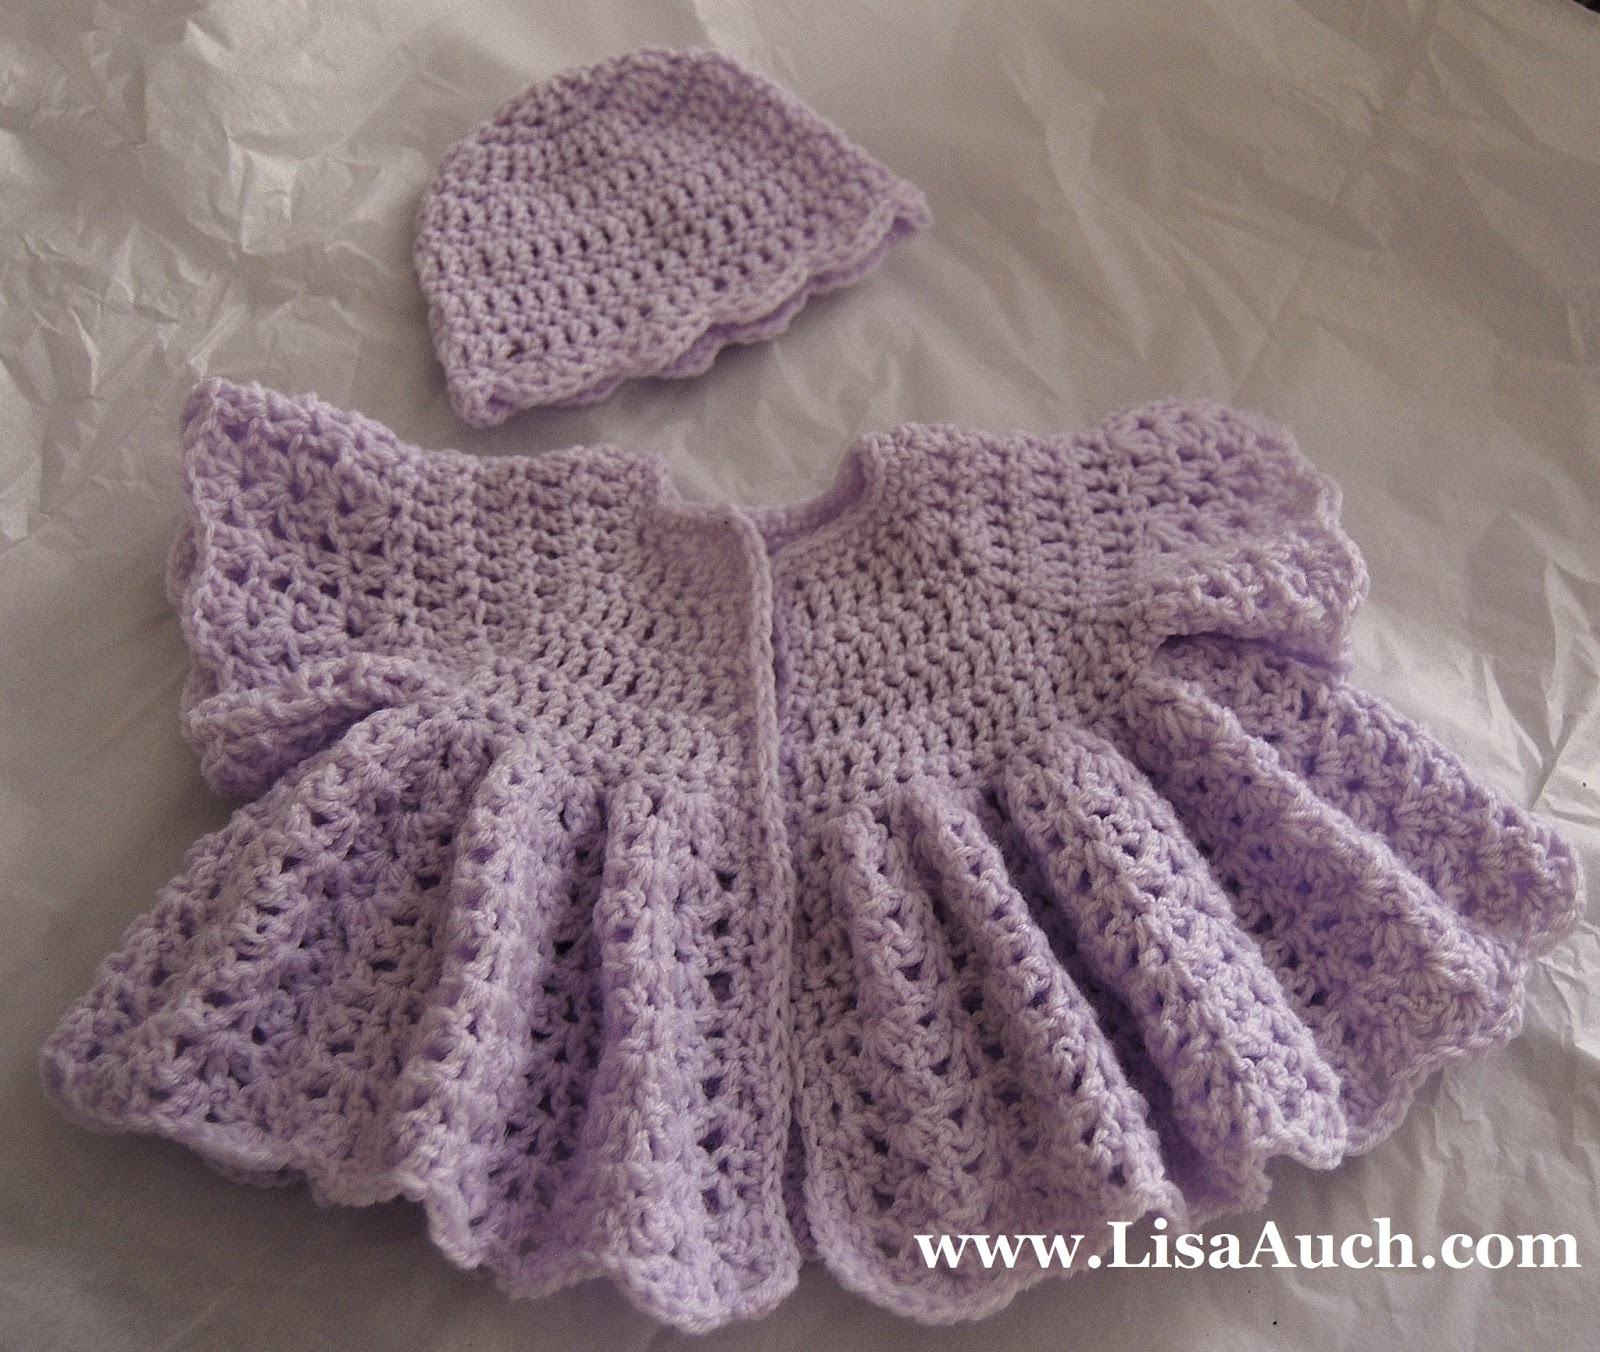 Free Crochet Projects : Free Crochet Patterns-crochet baby layette patterns-baby sweater ...